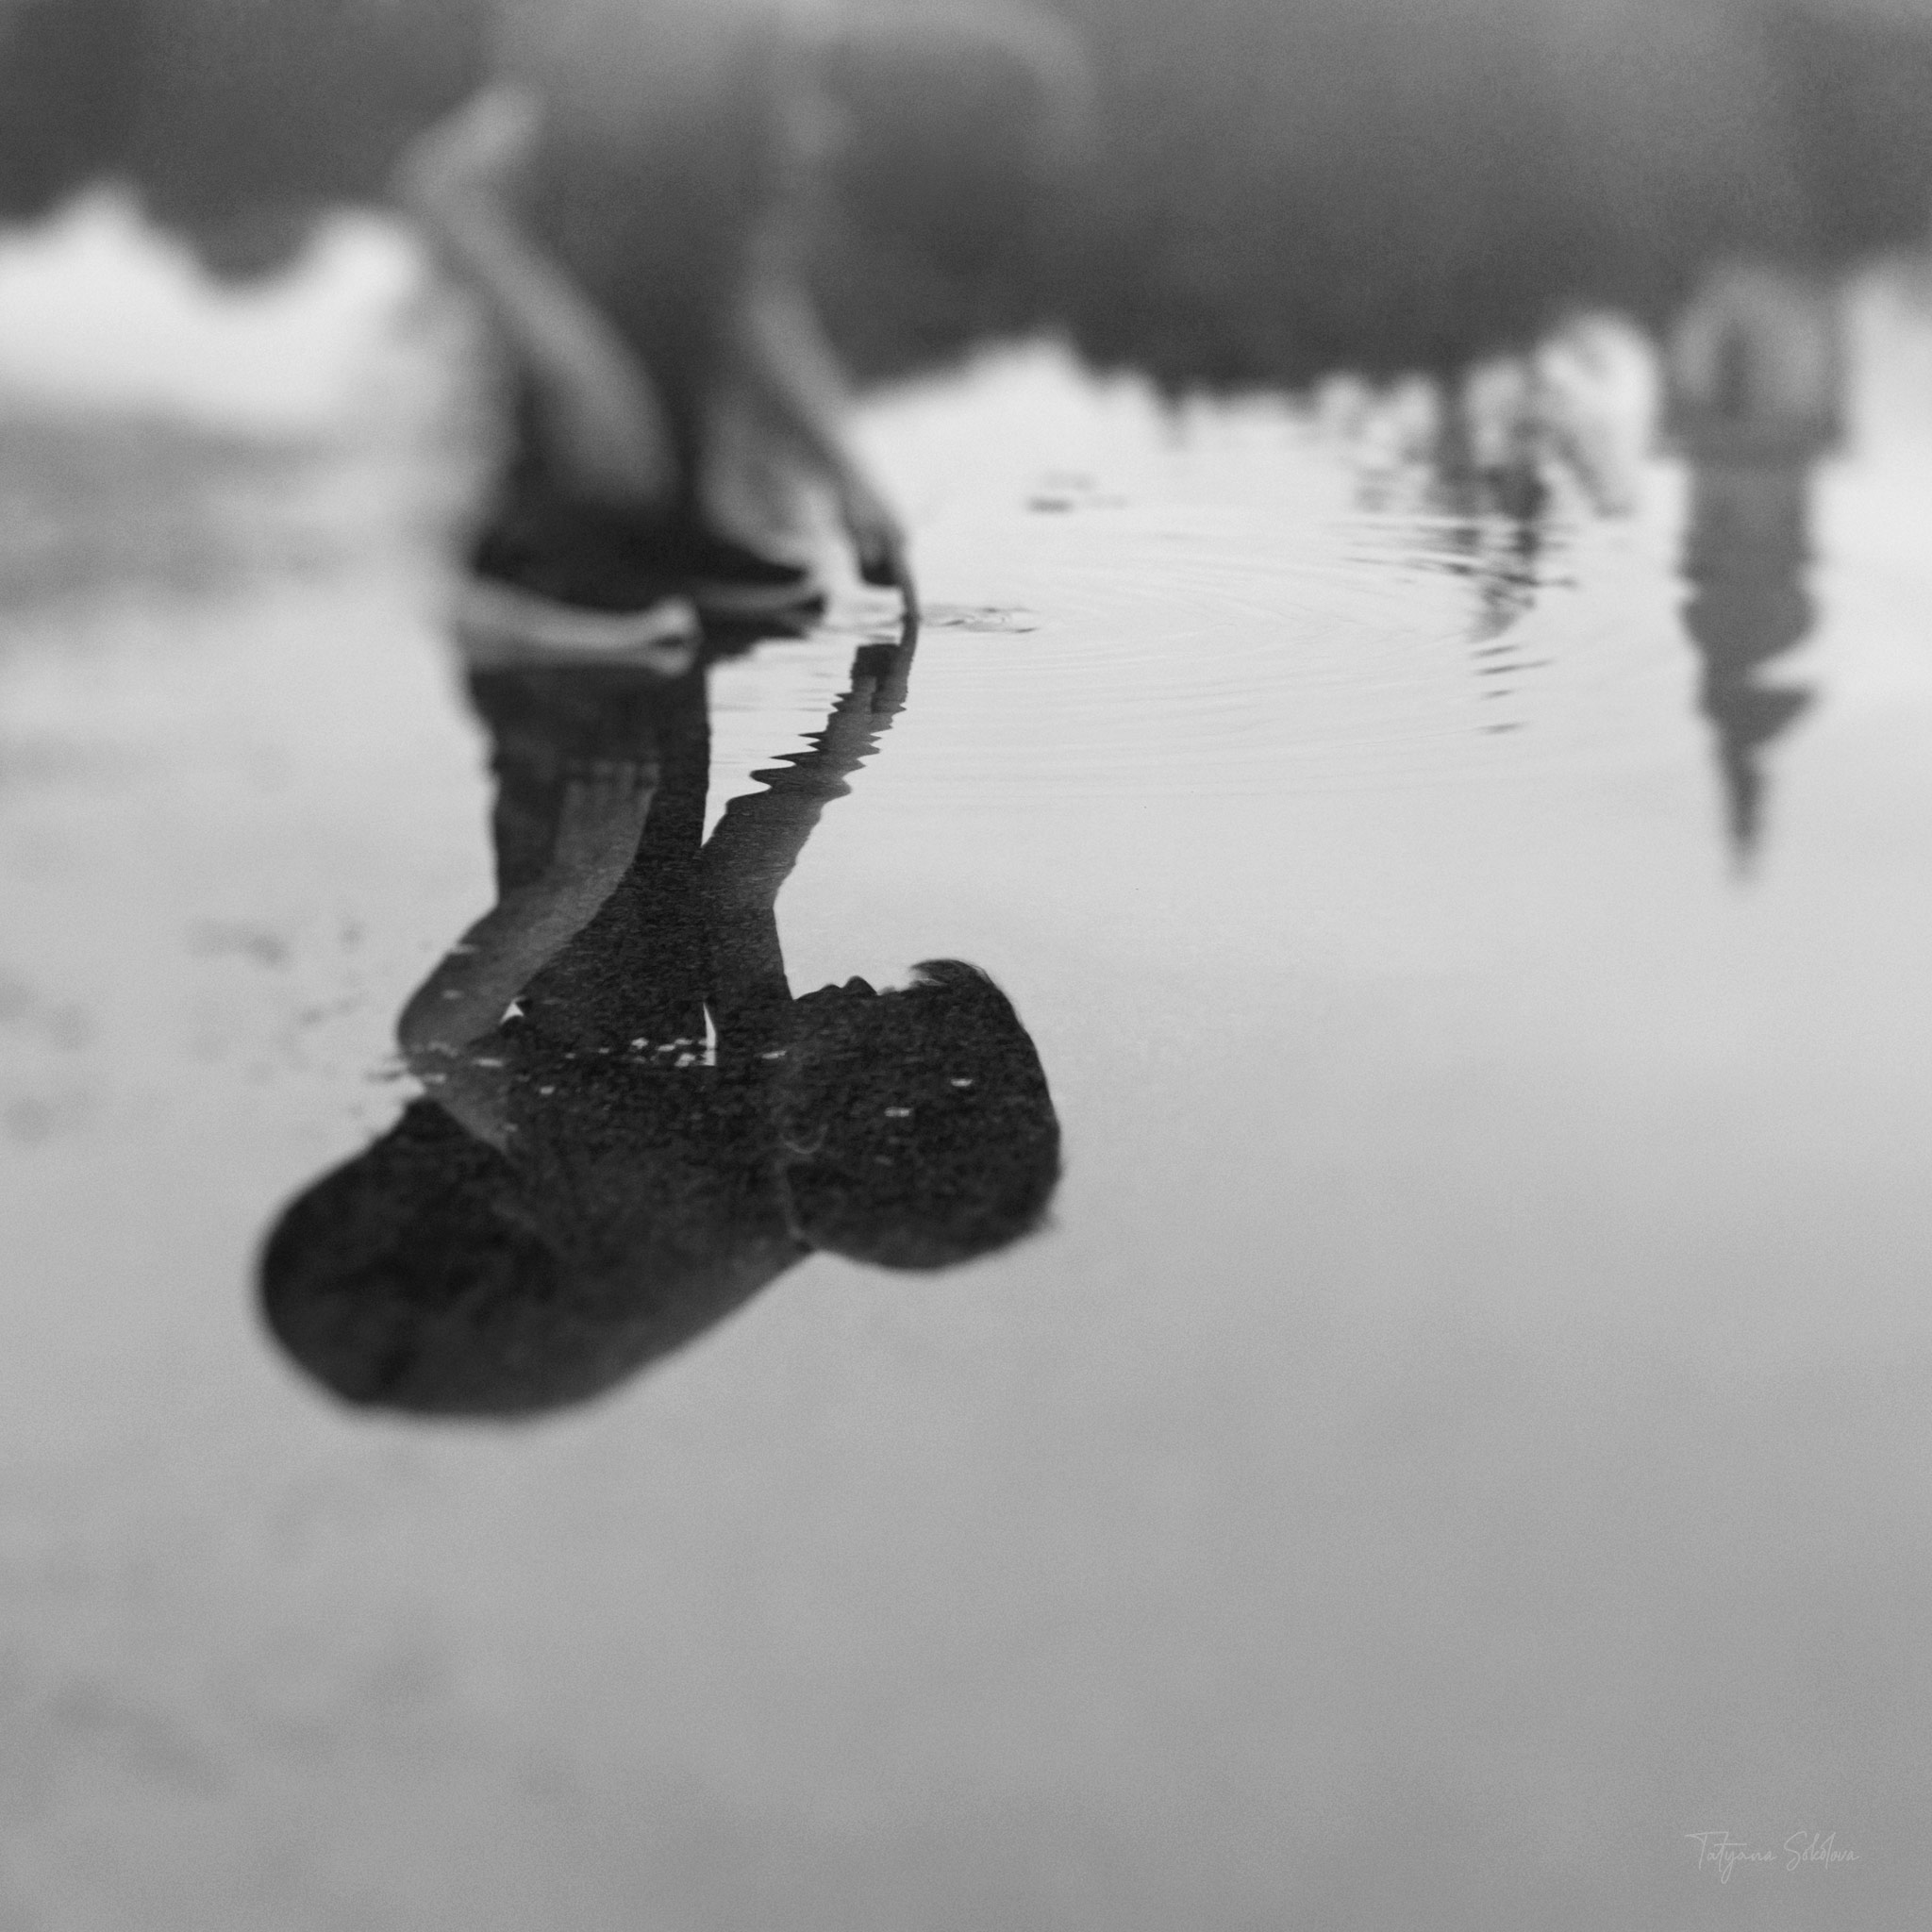 Houston Child Photography; Houston Fine Art Photography; Black and White Child Portrait; Puddle Reflection; Freelensing